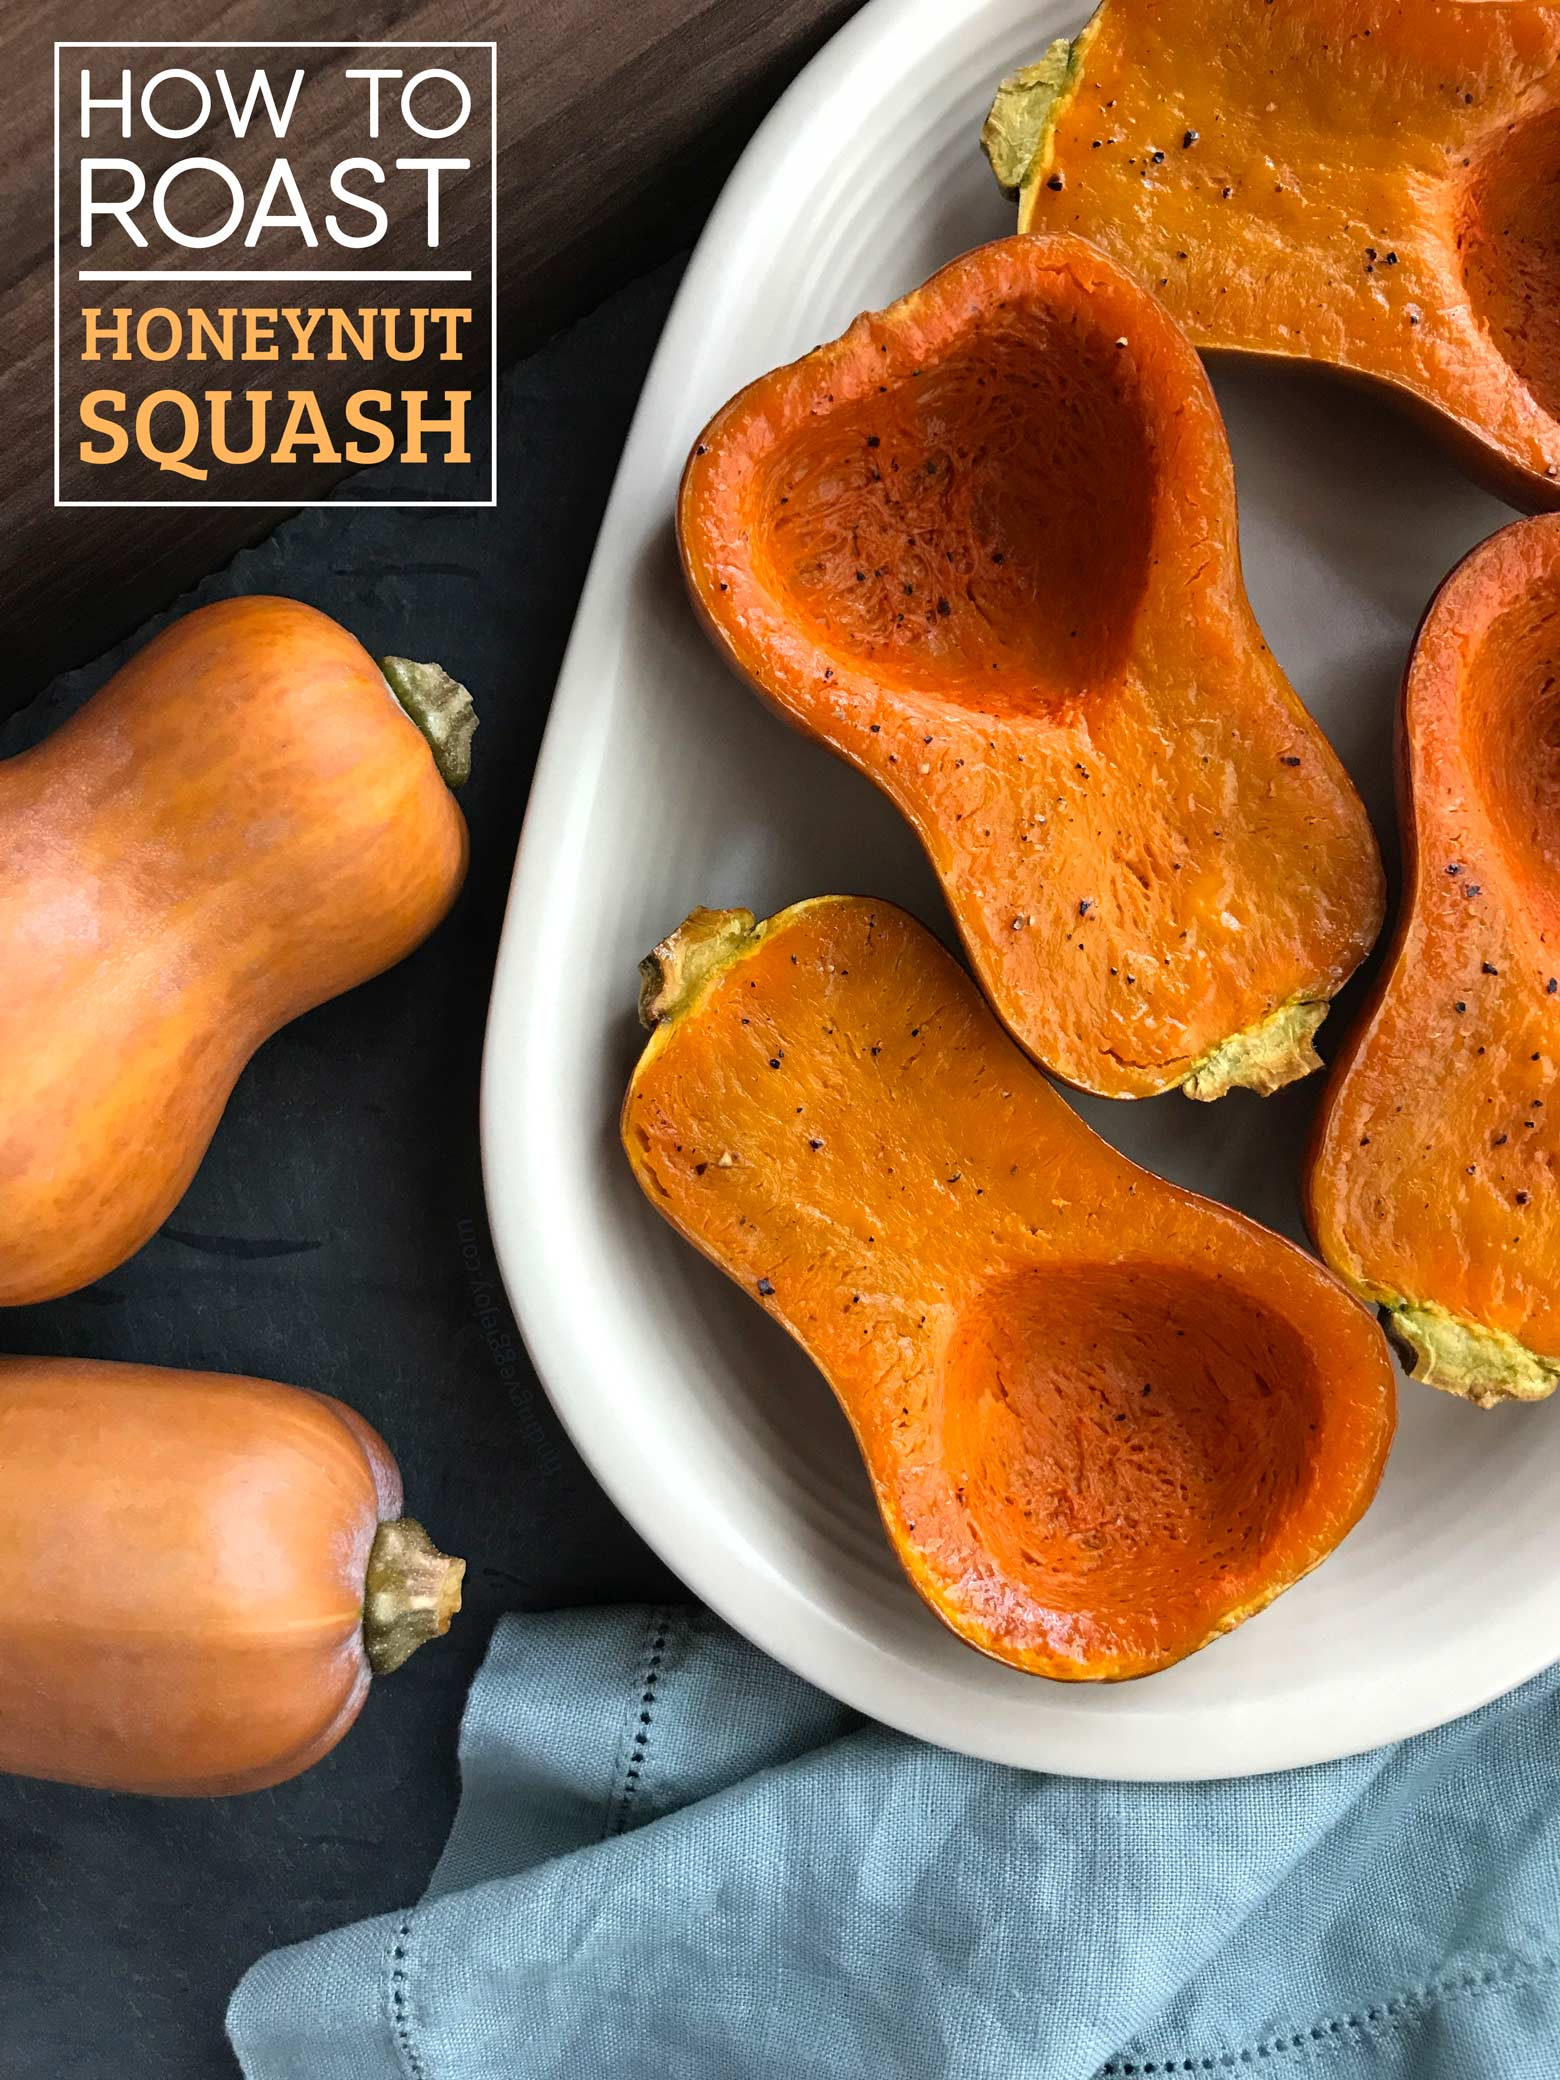 Shows roasted honeynut squash